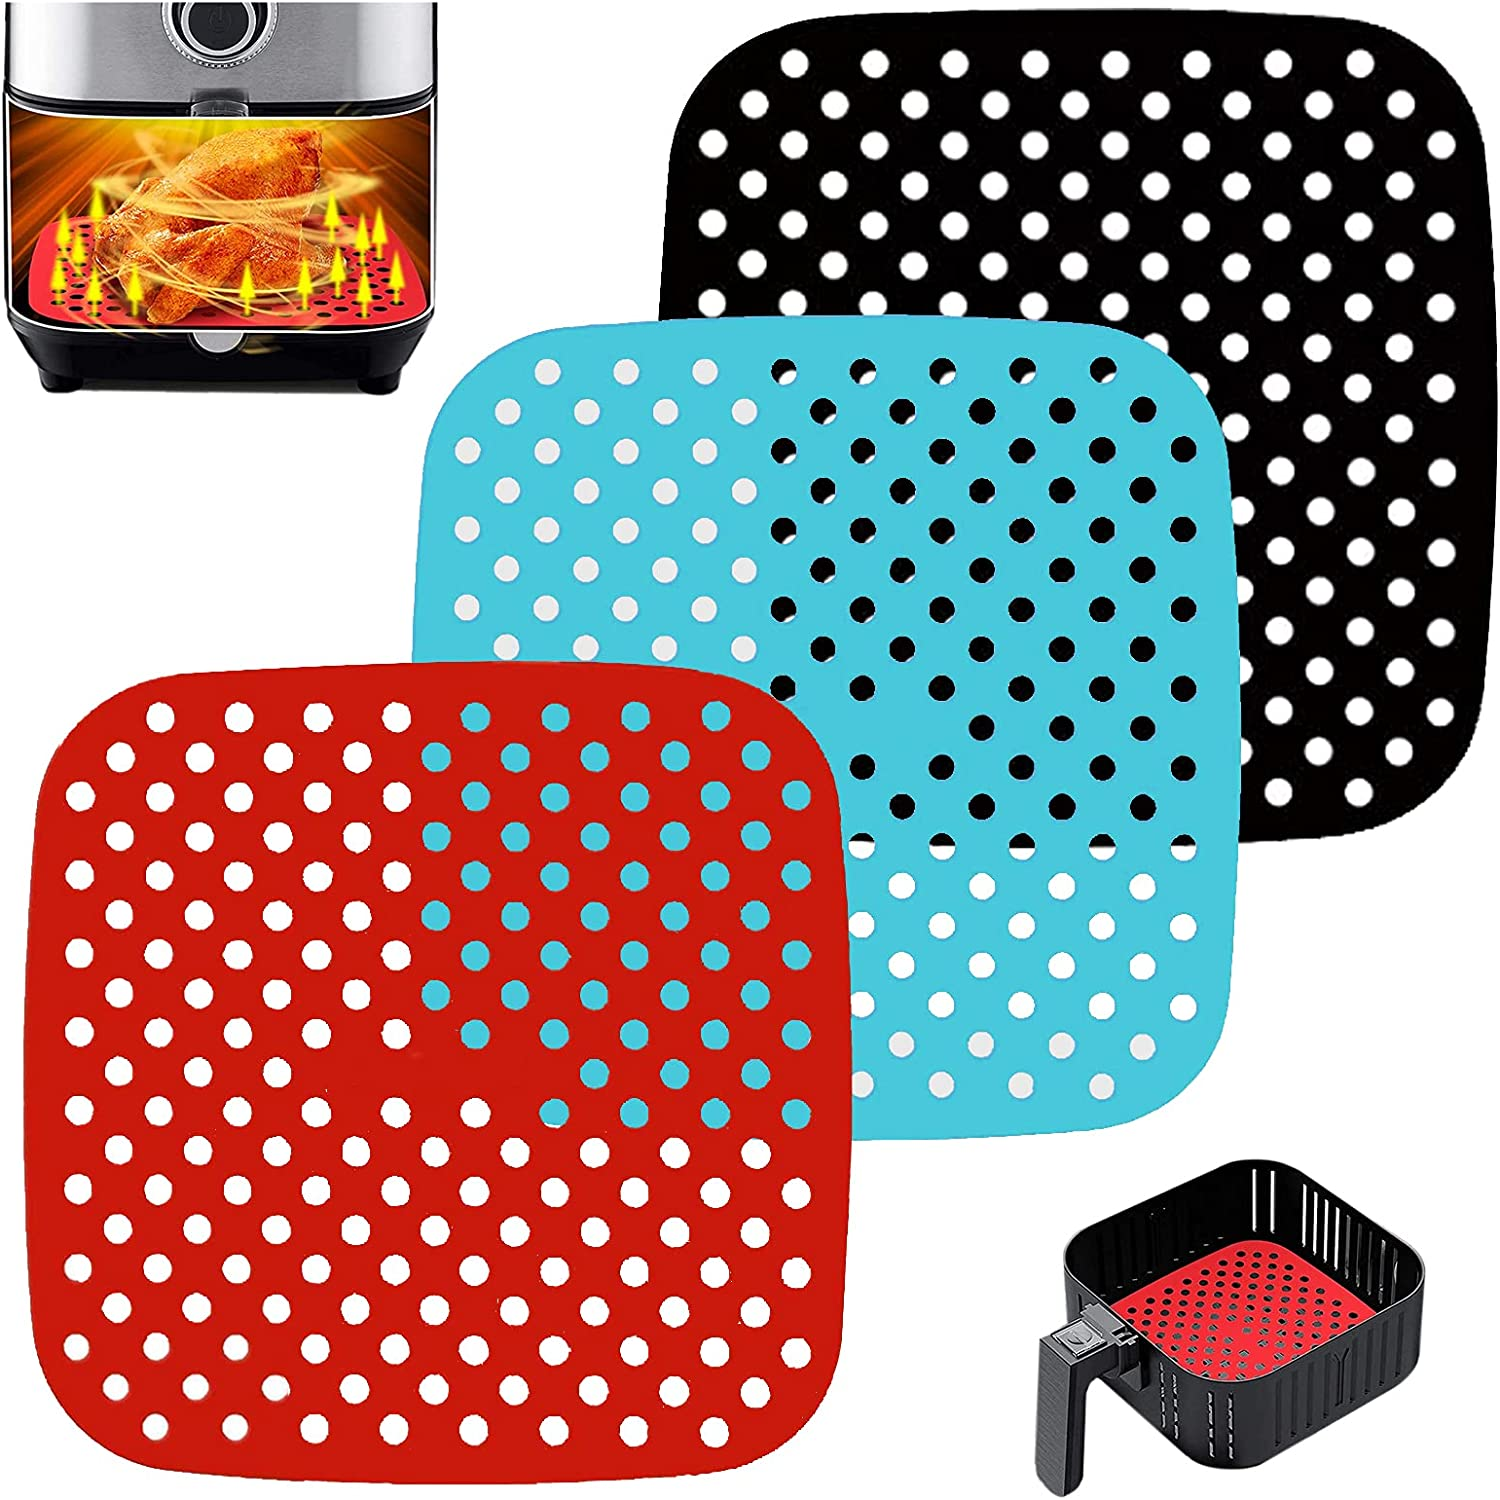 3 PCS Reusable Air Fryer Liners,Square Air Fryer Silicone Liners for Air Fryer Basket,Non-Stick Air Fryer Accessories Basket Mats Replacement for Parchment Paper, BPA Free. (Black Red Blue, 8.5 in)